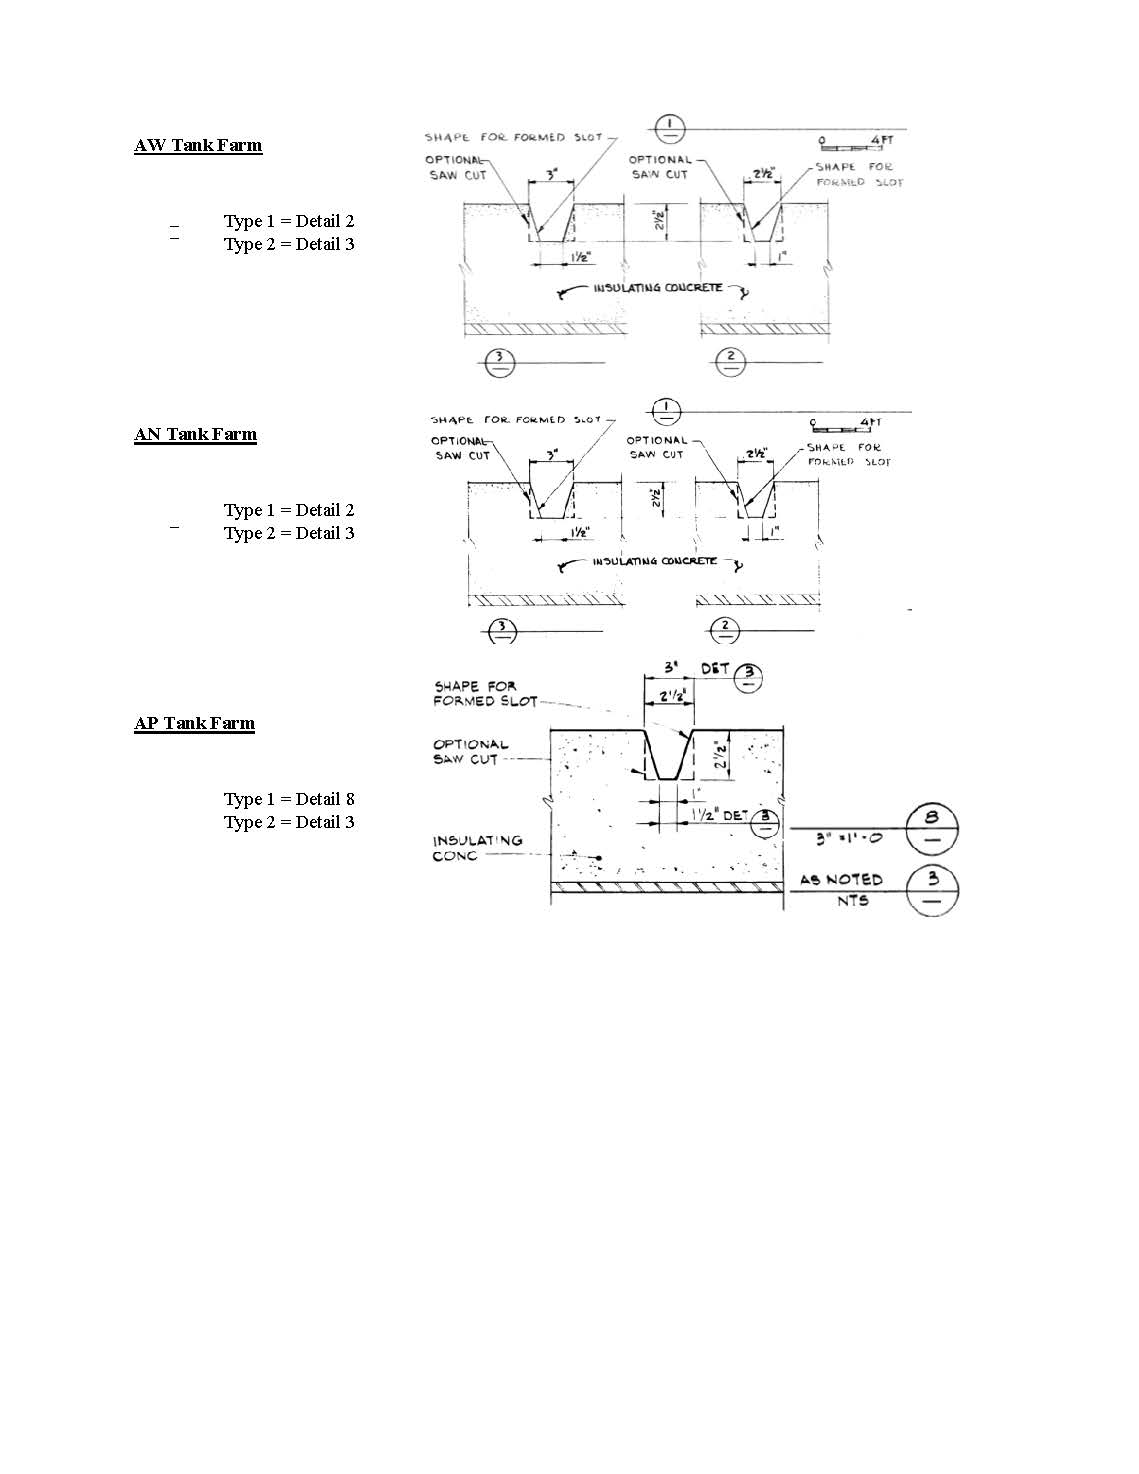 Appendix 1 Air slows drawings and sketches 2.jpg